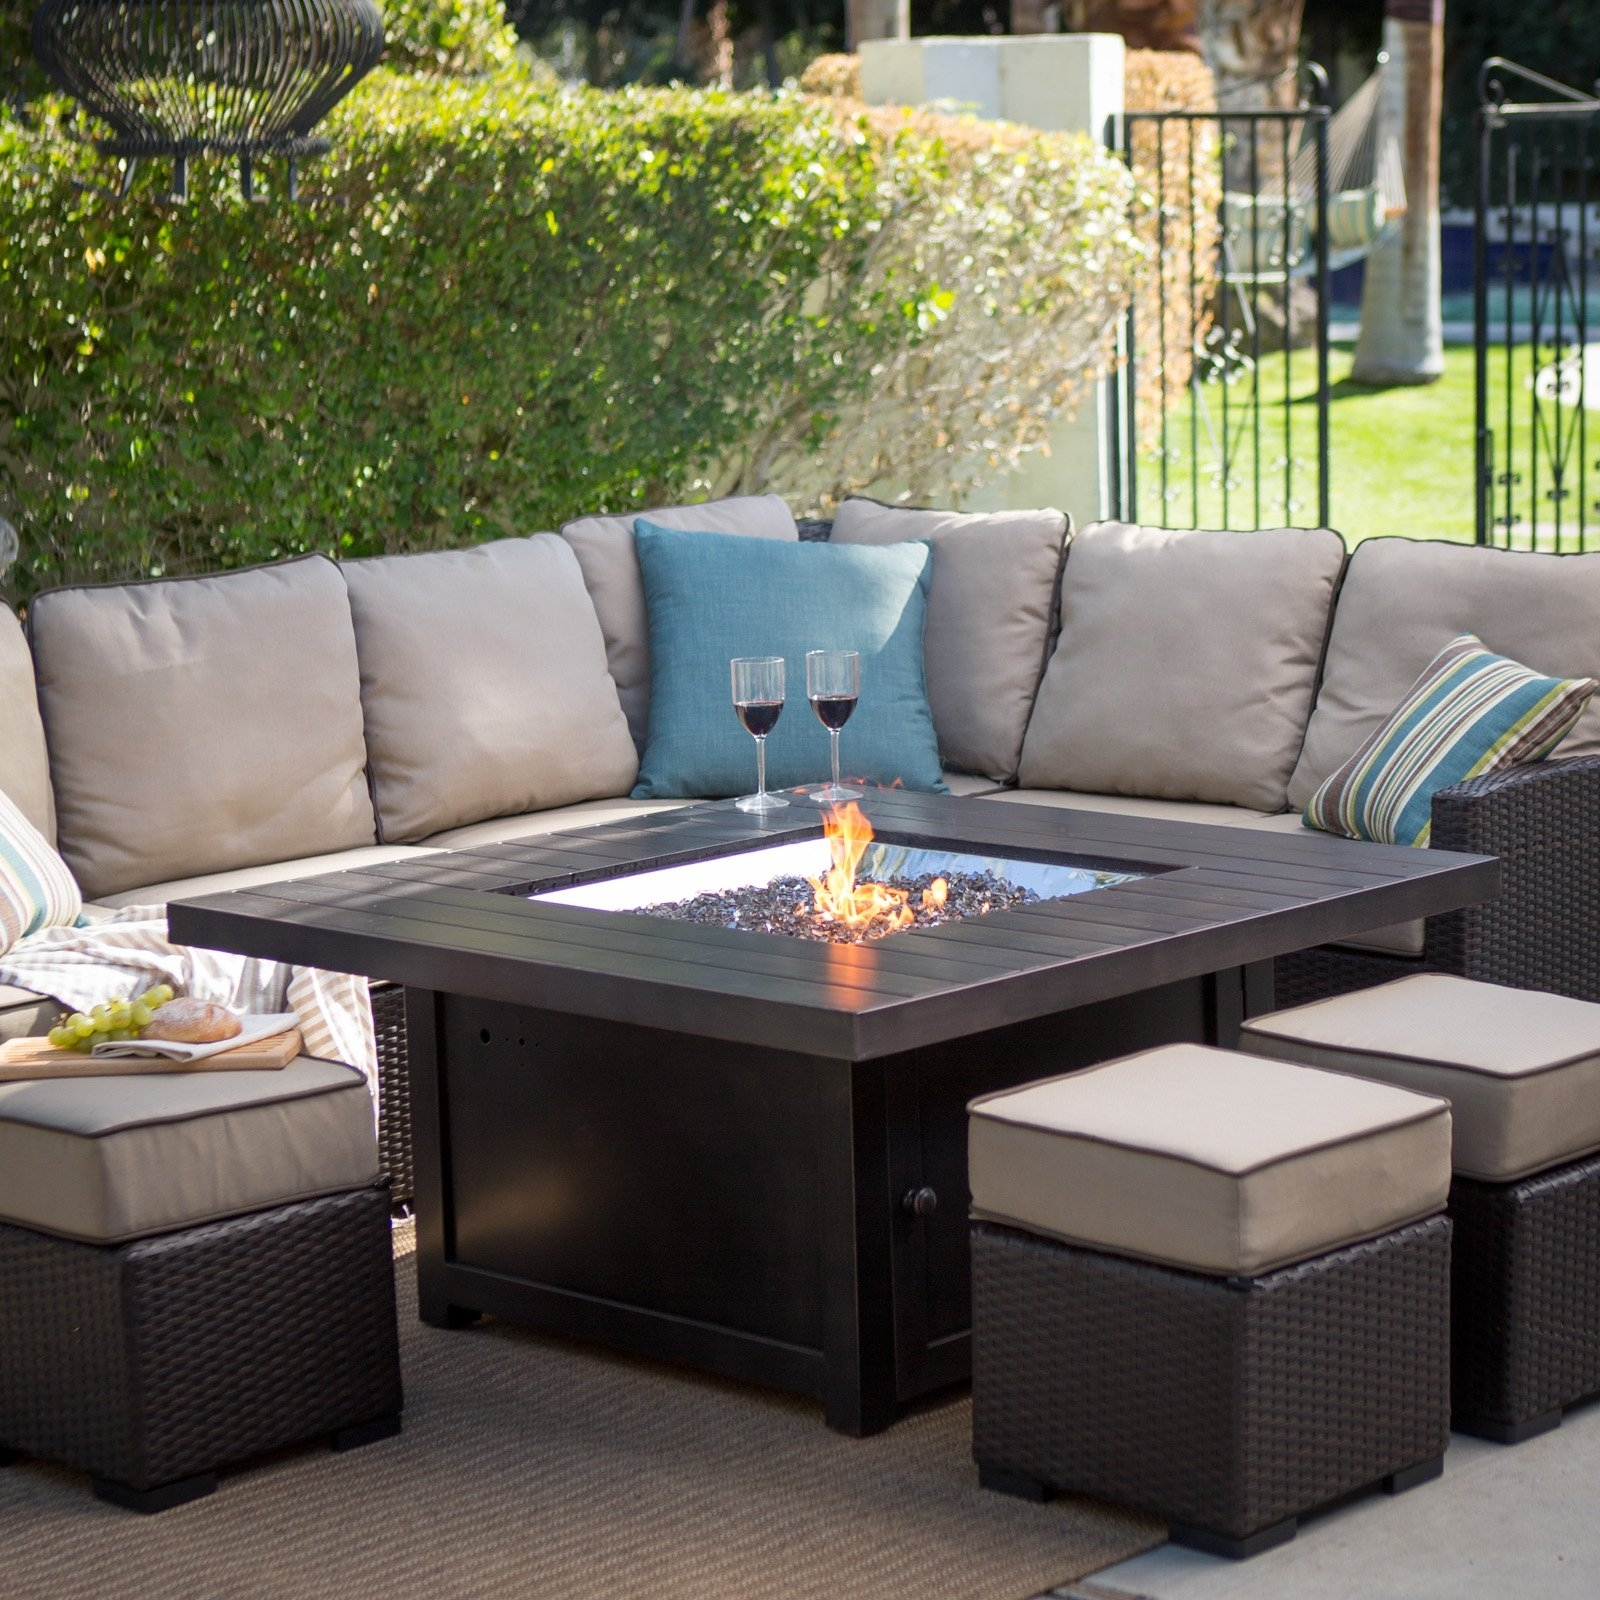 Most Recent Furniture: High Quality Patio Furniture Columbus Ohio And Fire Pit Regarding Patio Conversation Sets With Gas Fire Pit (View 7 of 15)